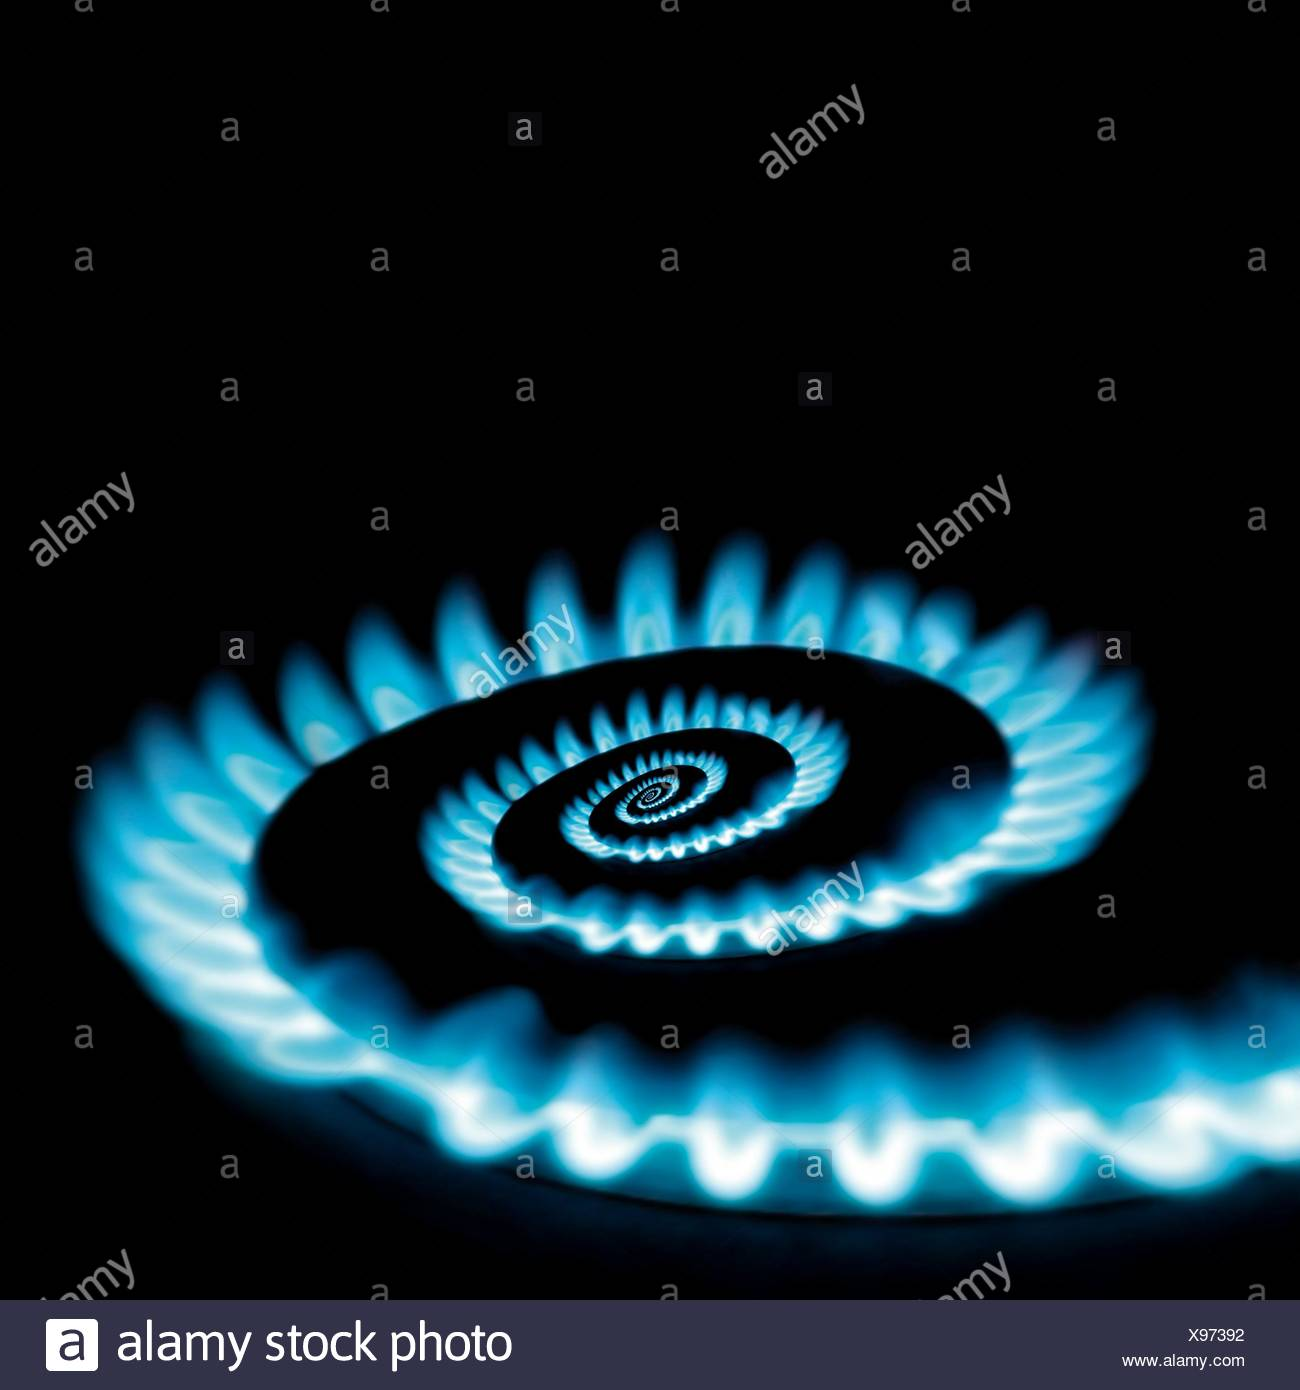 Conceptual vicious circle of energy crisis gas burner spiral